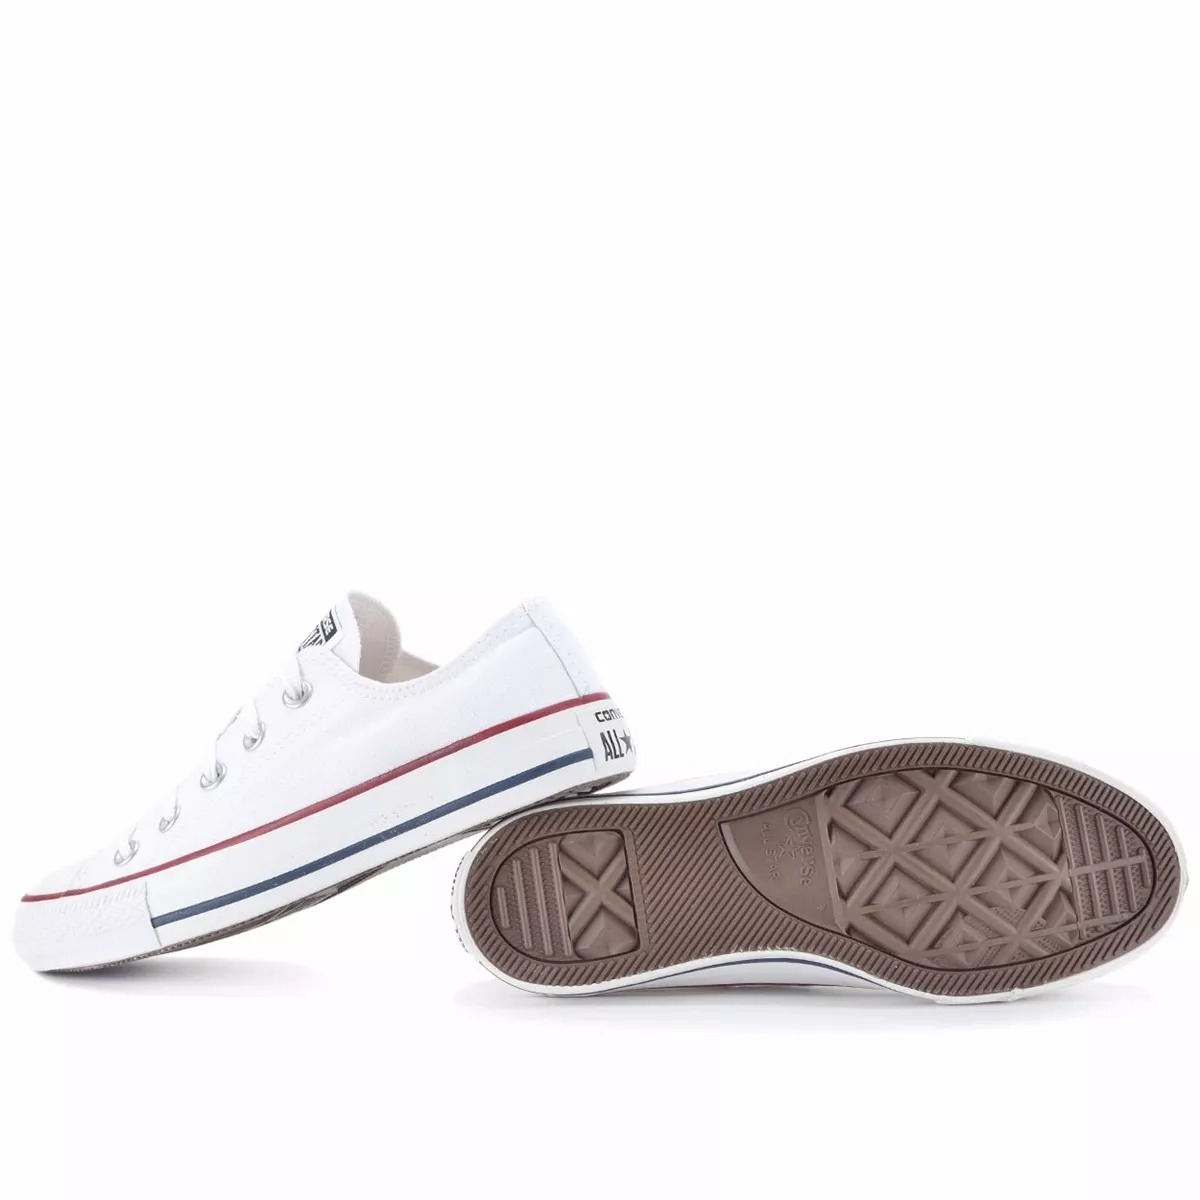 tênis converse all star ct as core ox branco - ct0001 30002. Carregando  zoom. 40fdd5223c291